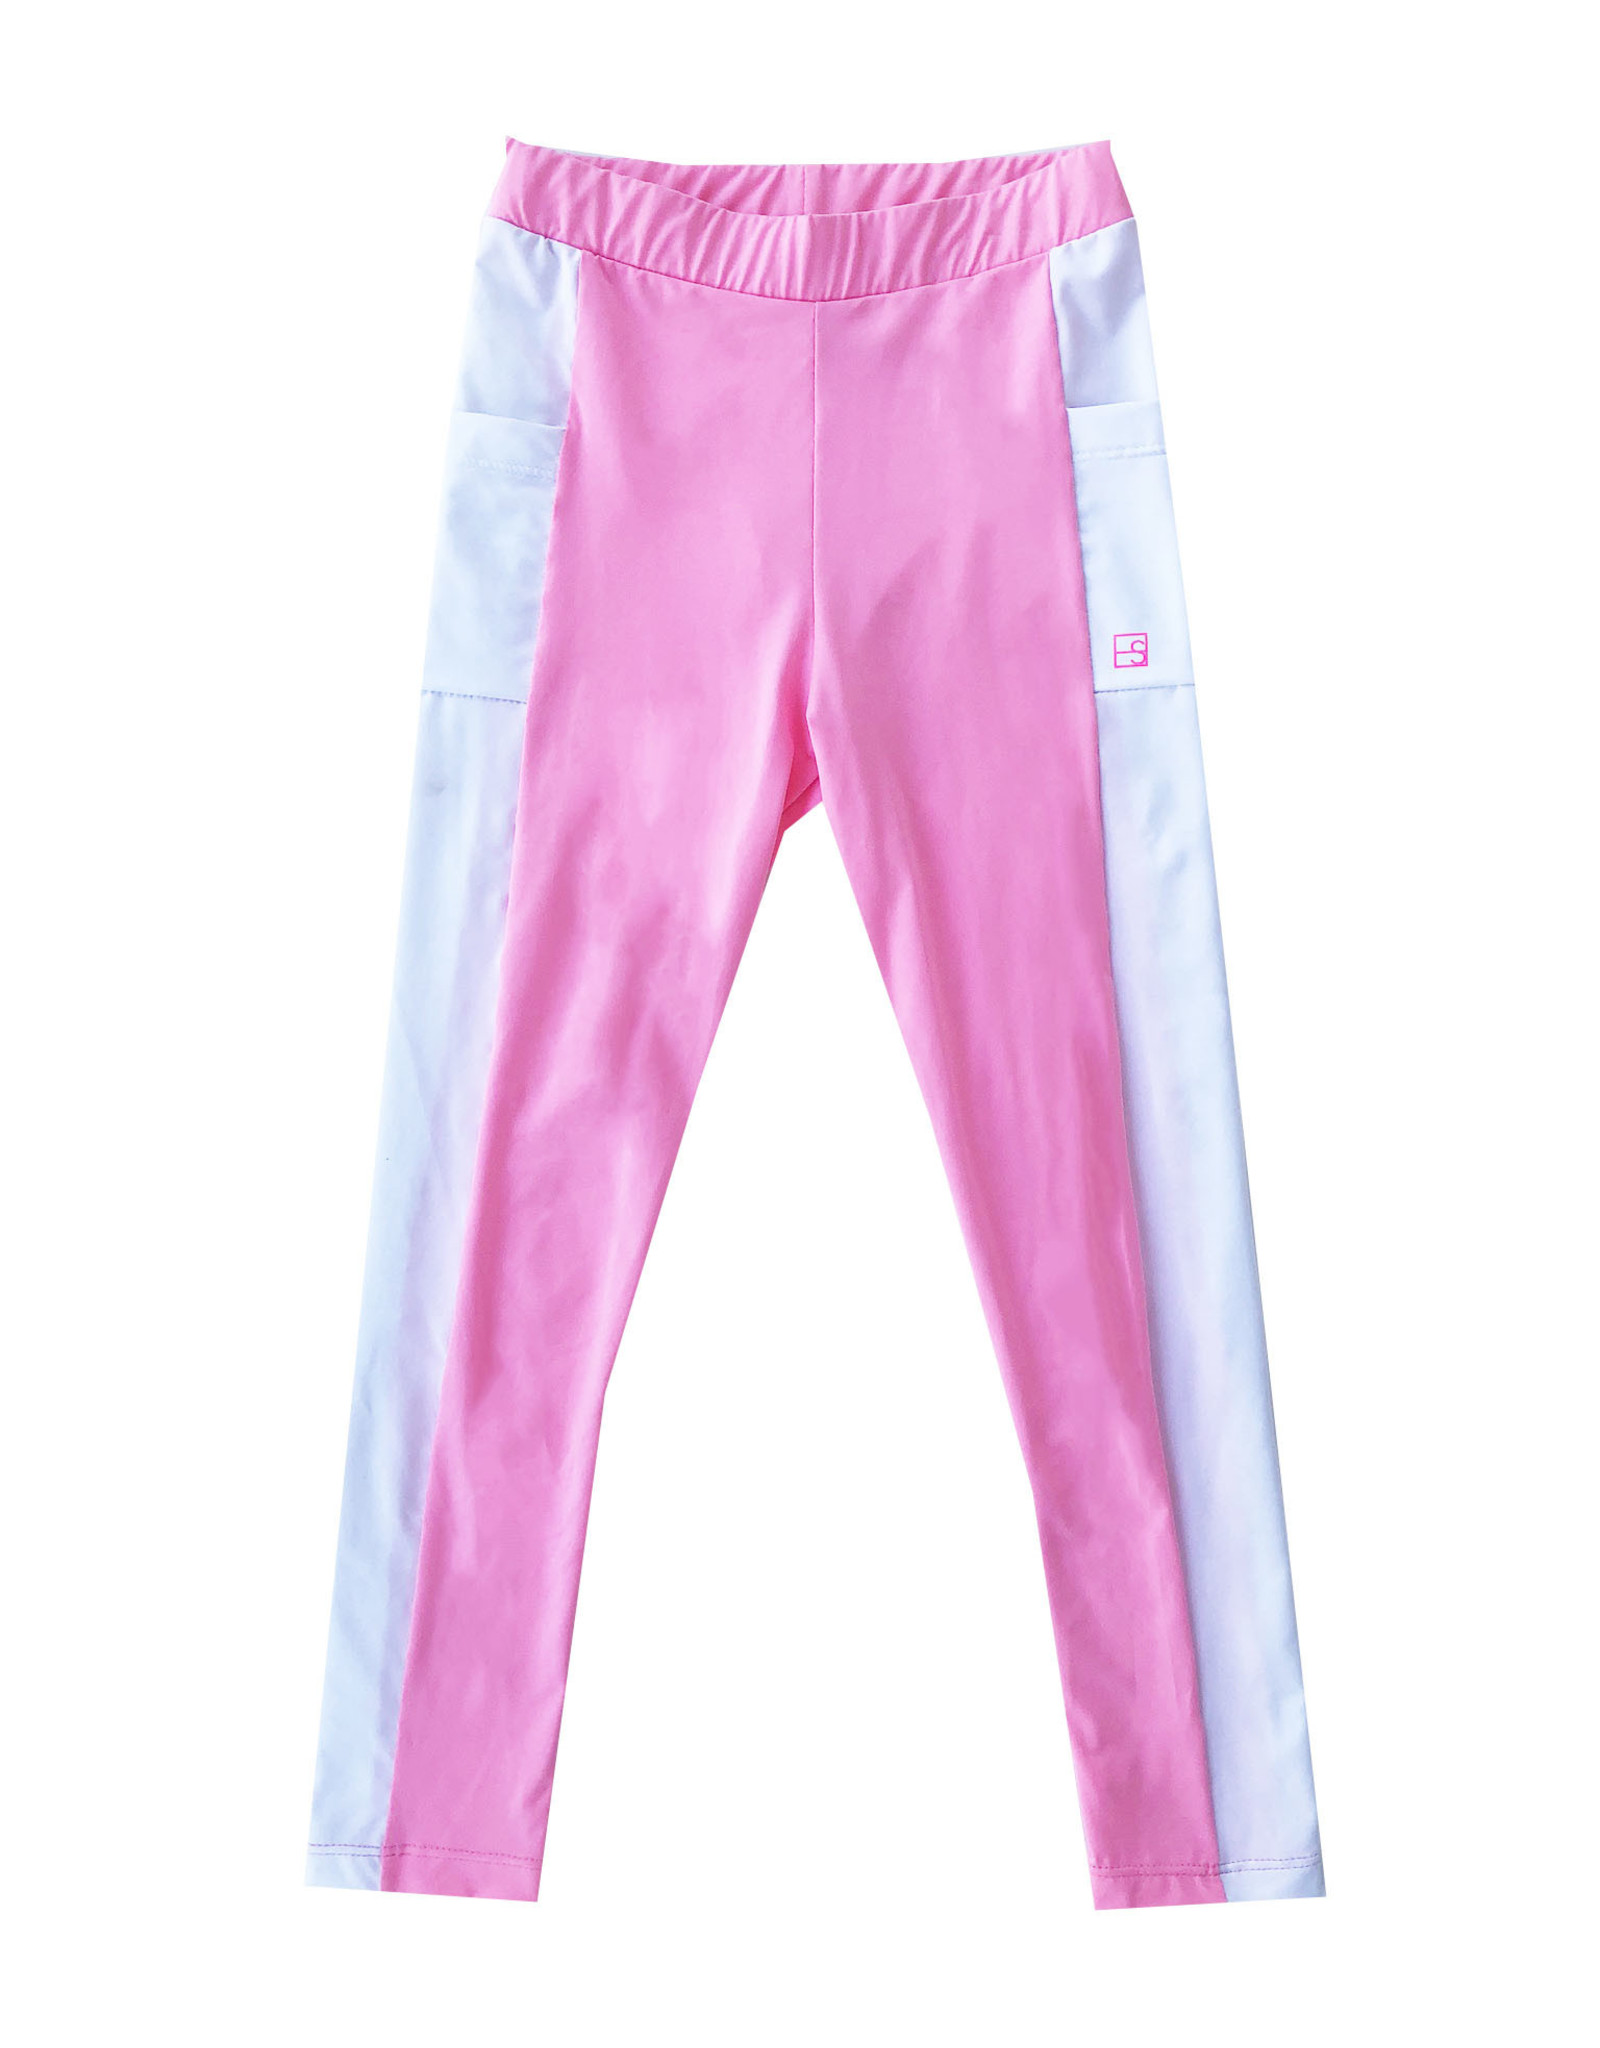 SET Lila pink leggings with white accents